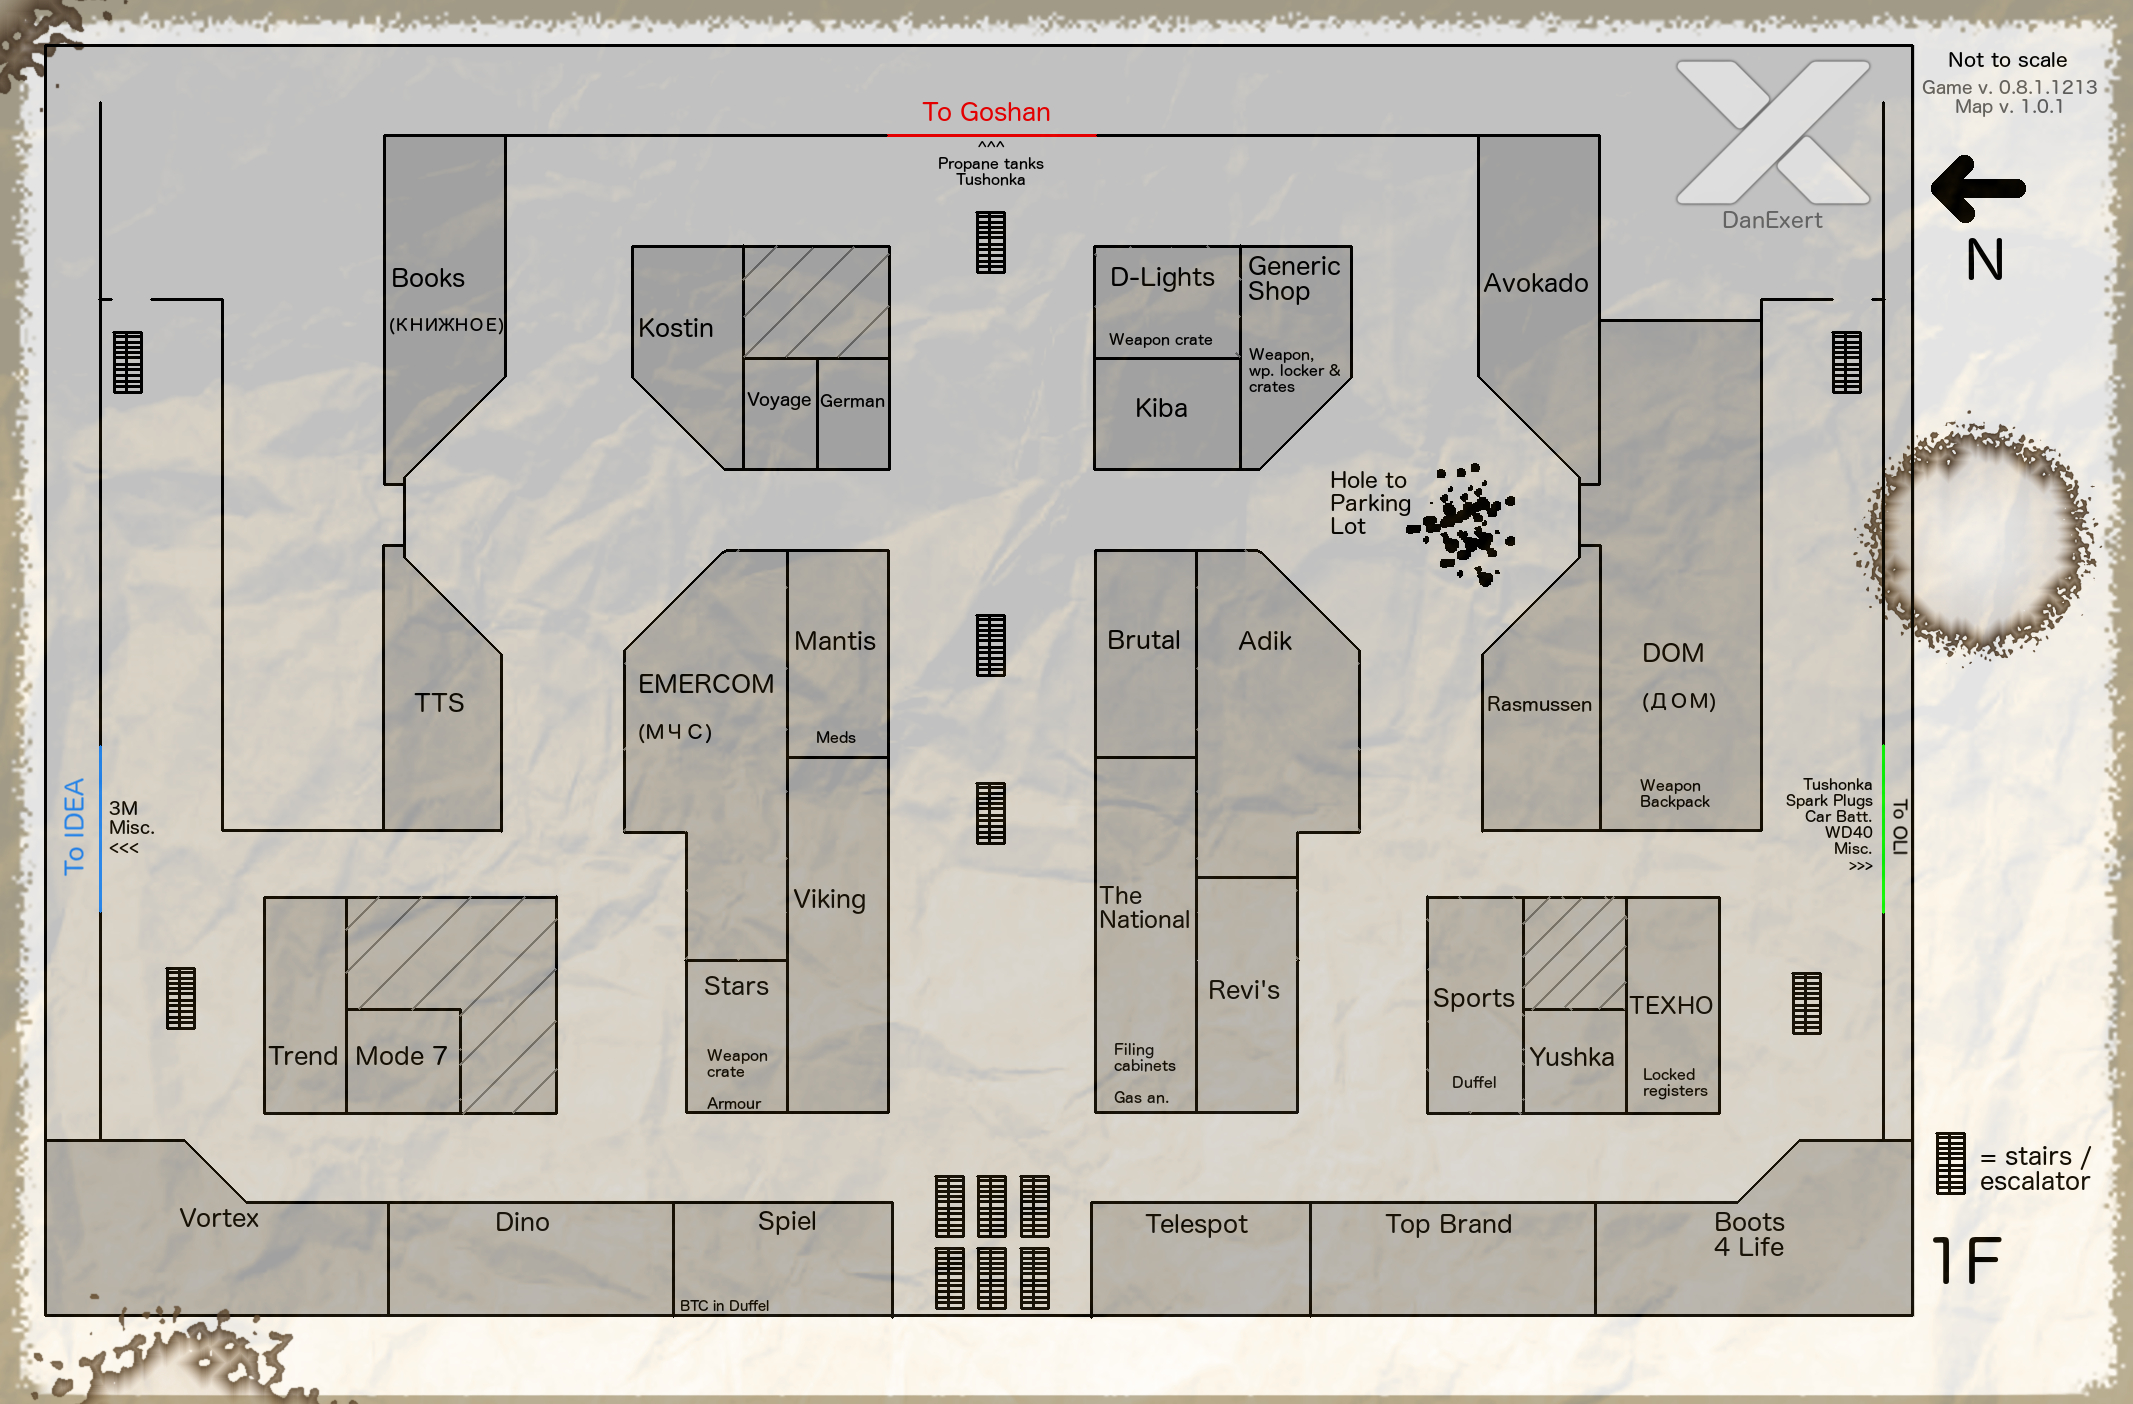 Made maps for Interchange Mall - General game forum - Escape